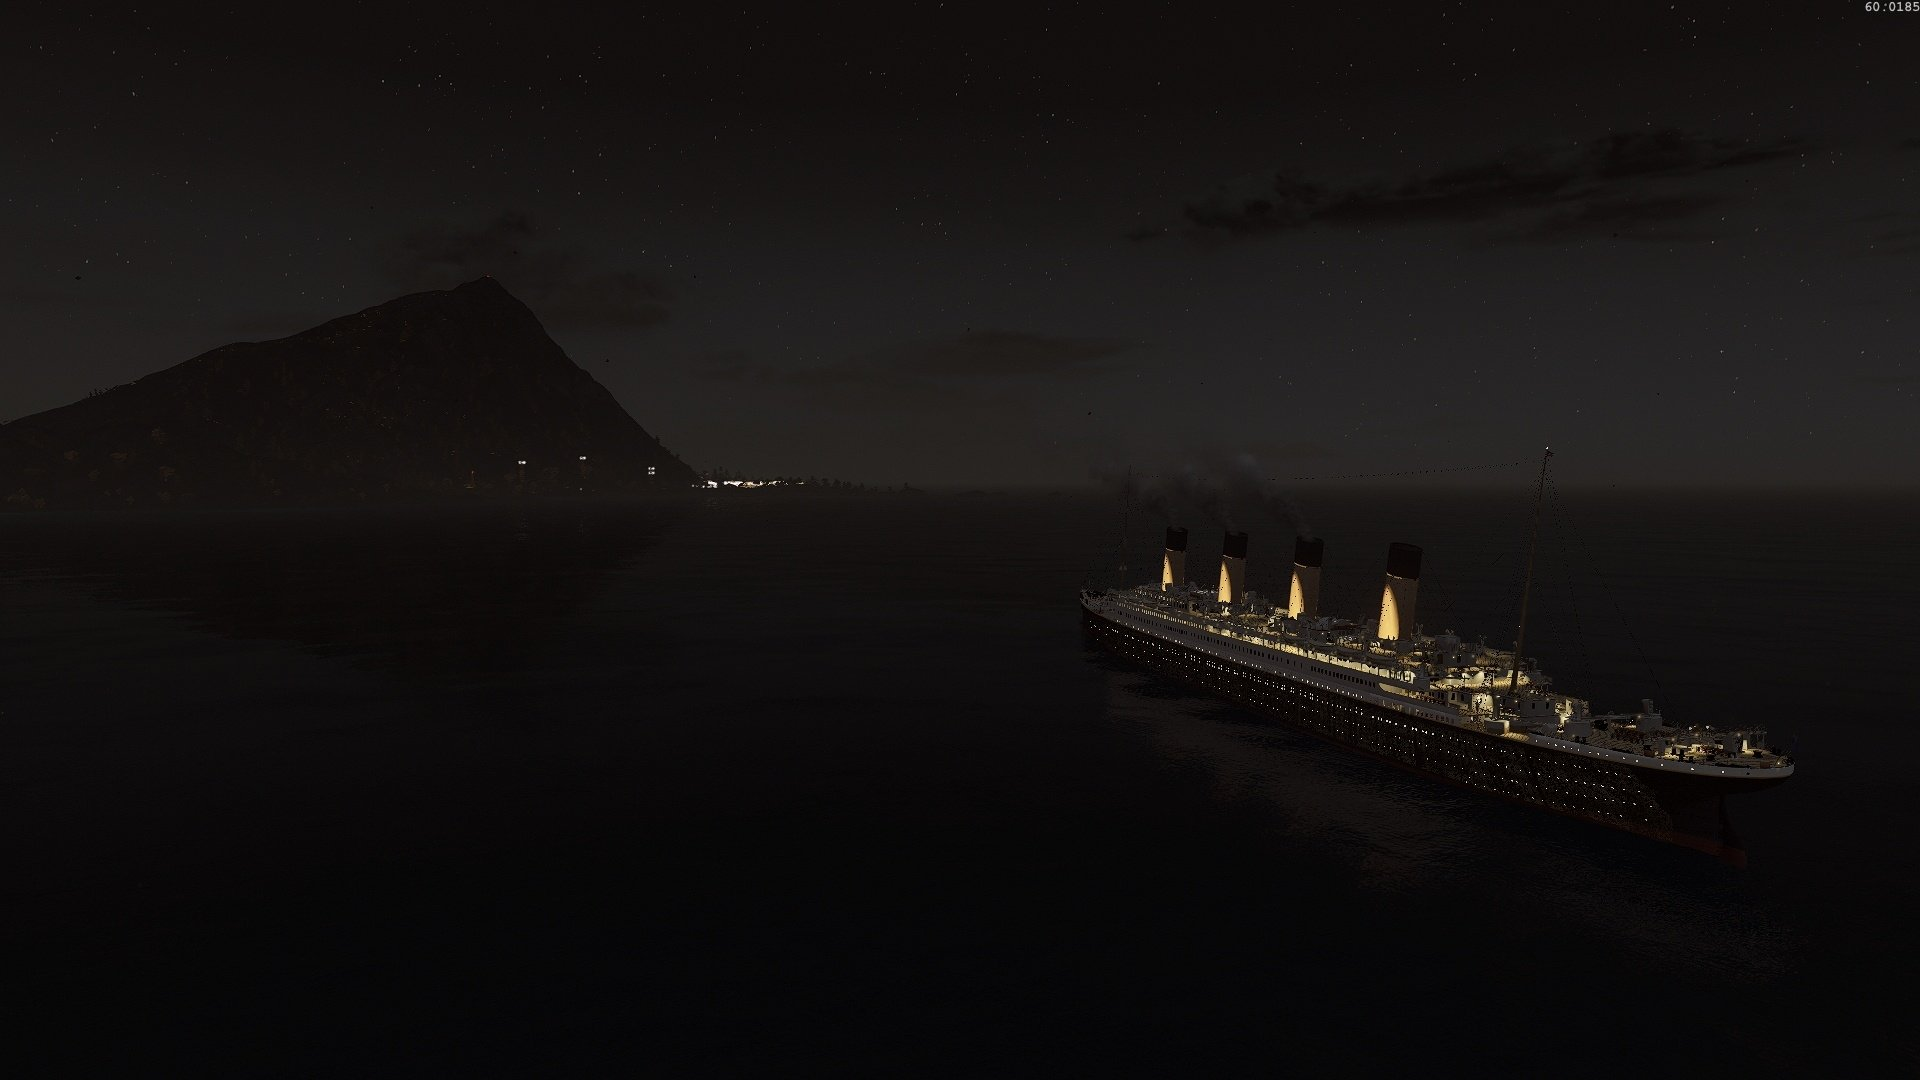 Titanic Wallpaper Download Full